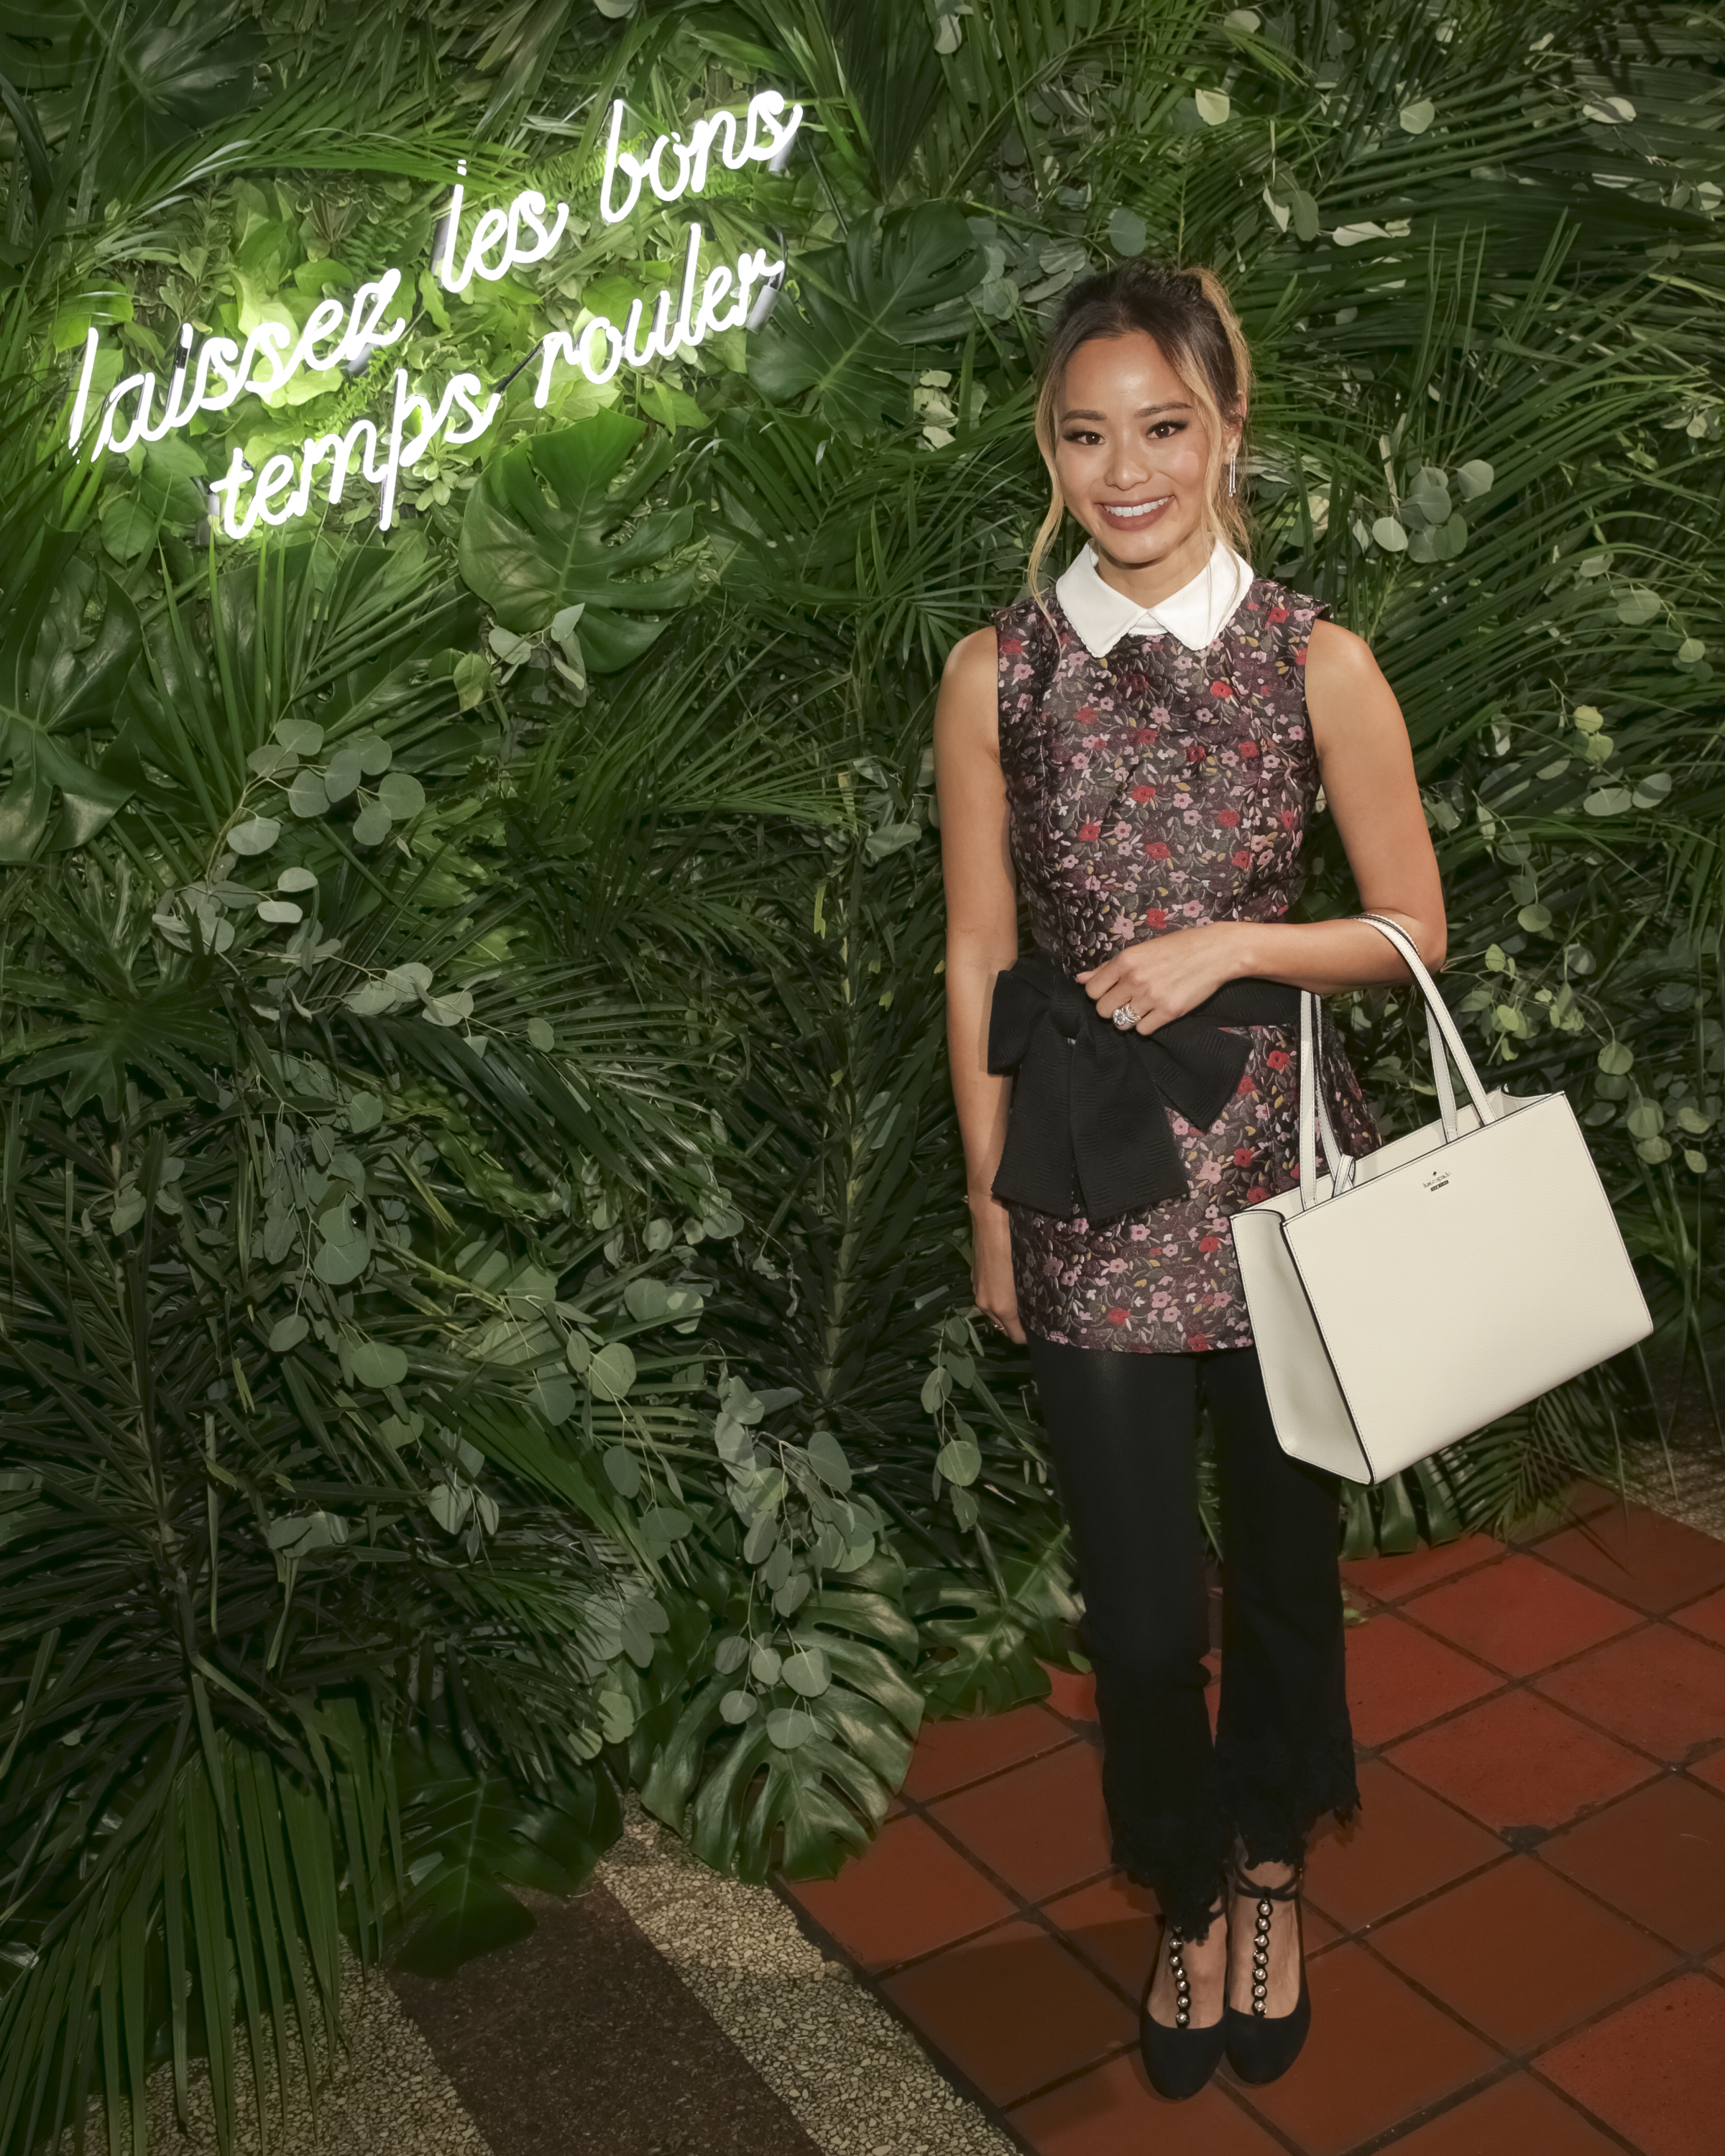 <div class='meta'><div class='origin-logo' data-origin='AP'></div><span class='caption-text' data-credit='Brent N. Clarke/Invision/AP'>Actress Jamie Chung attends the Kate Spade 2018 Spring Presentation held at Grand Central Terminal on Friday, Sept. 8, 2017, in New York. (Photo by Brent N. Clarke/Invision/AP)</span></div>